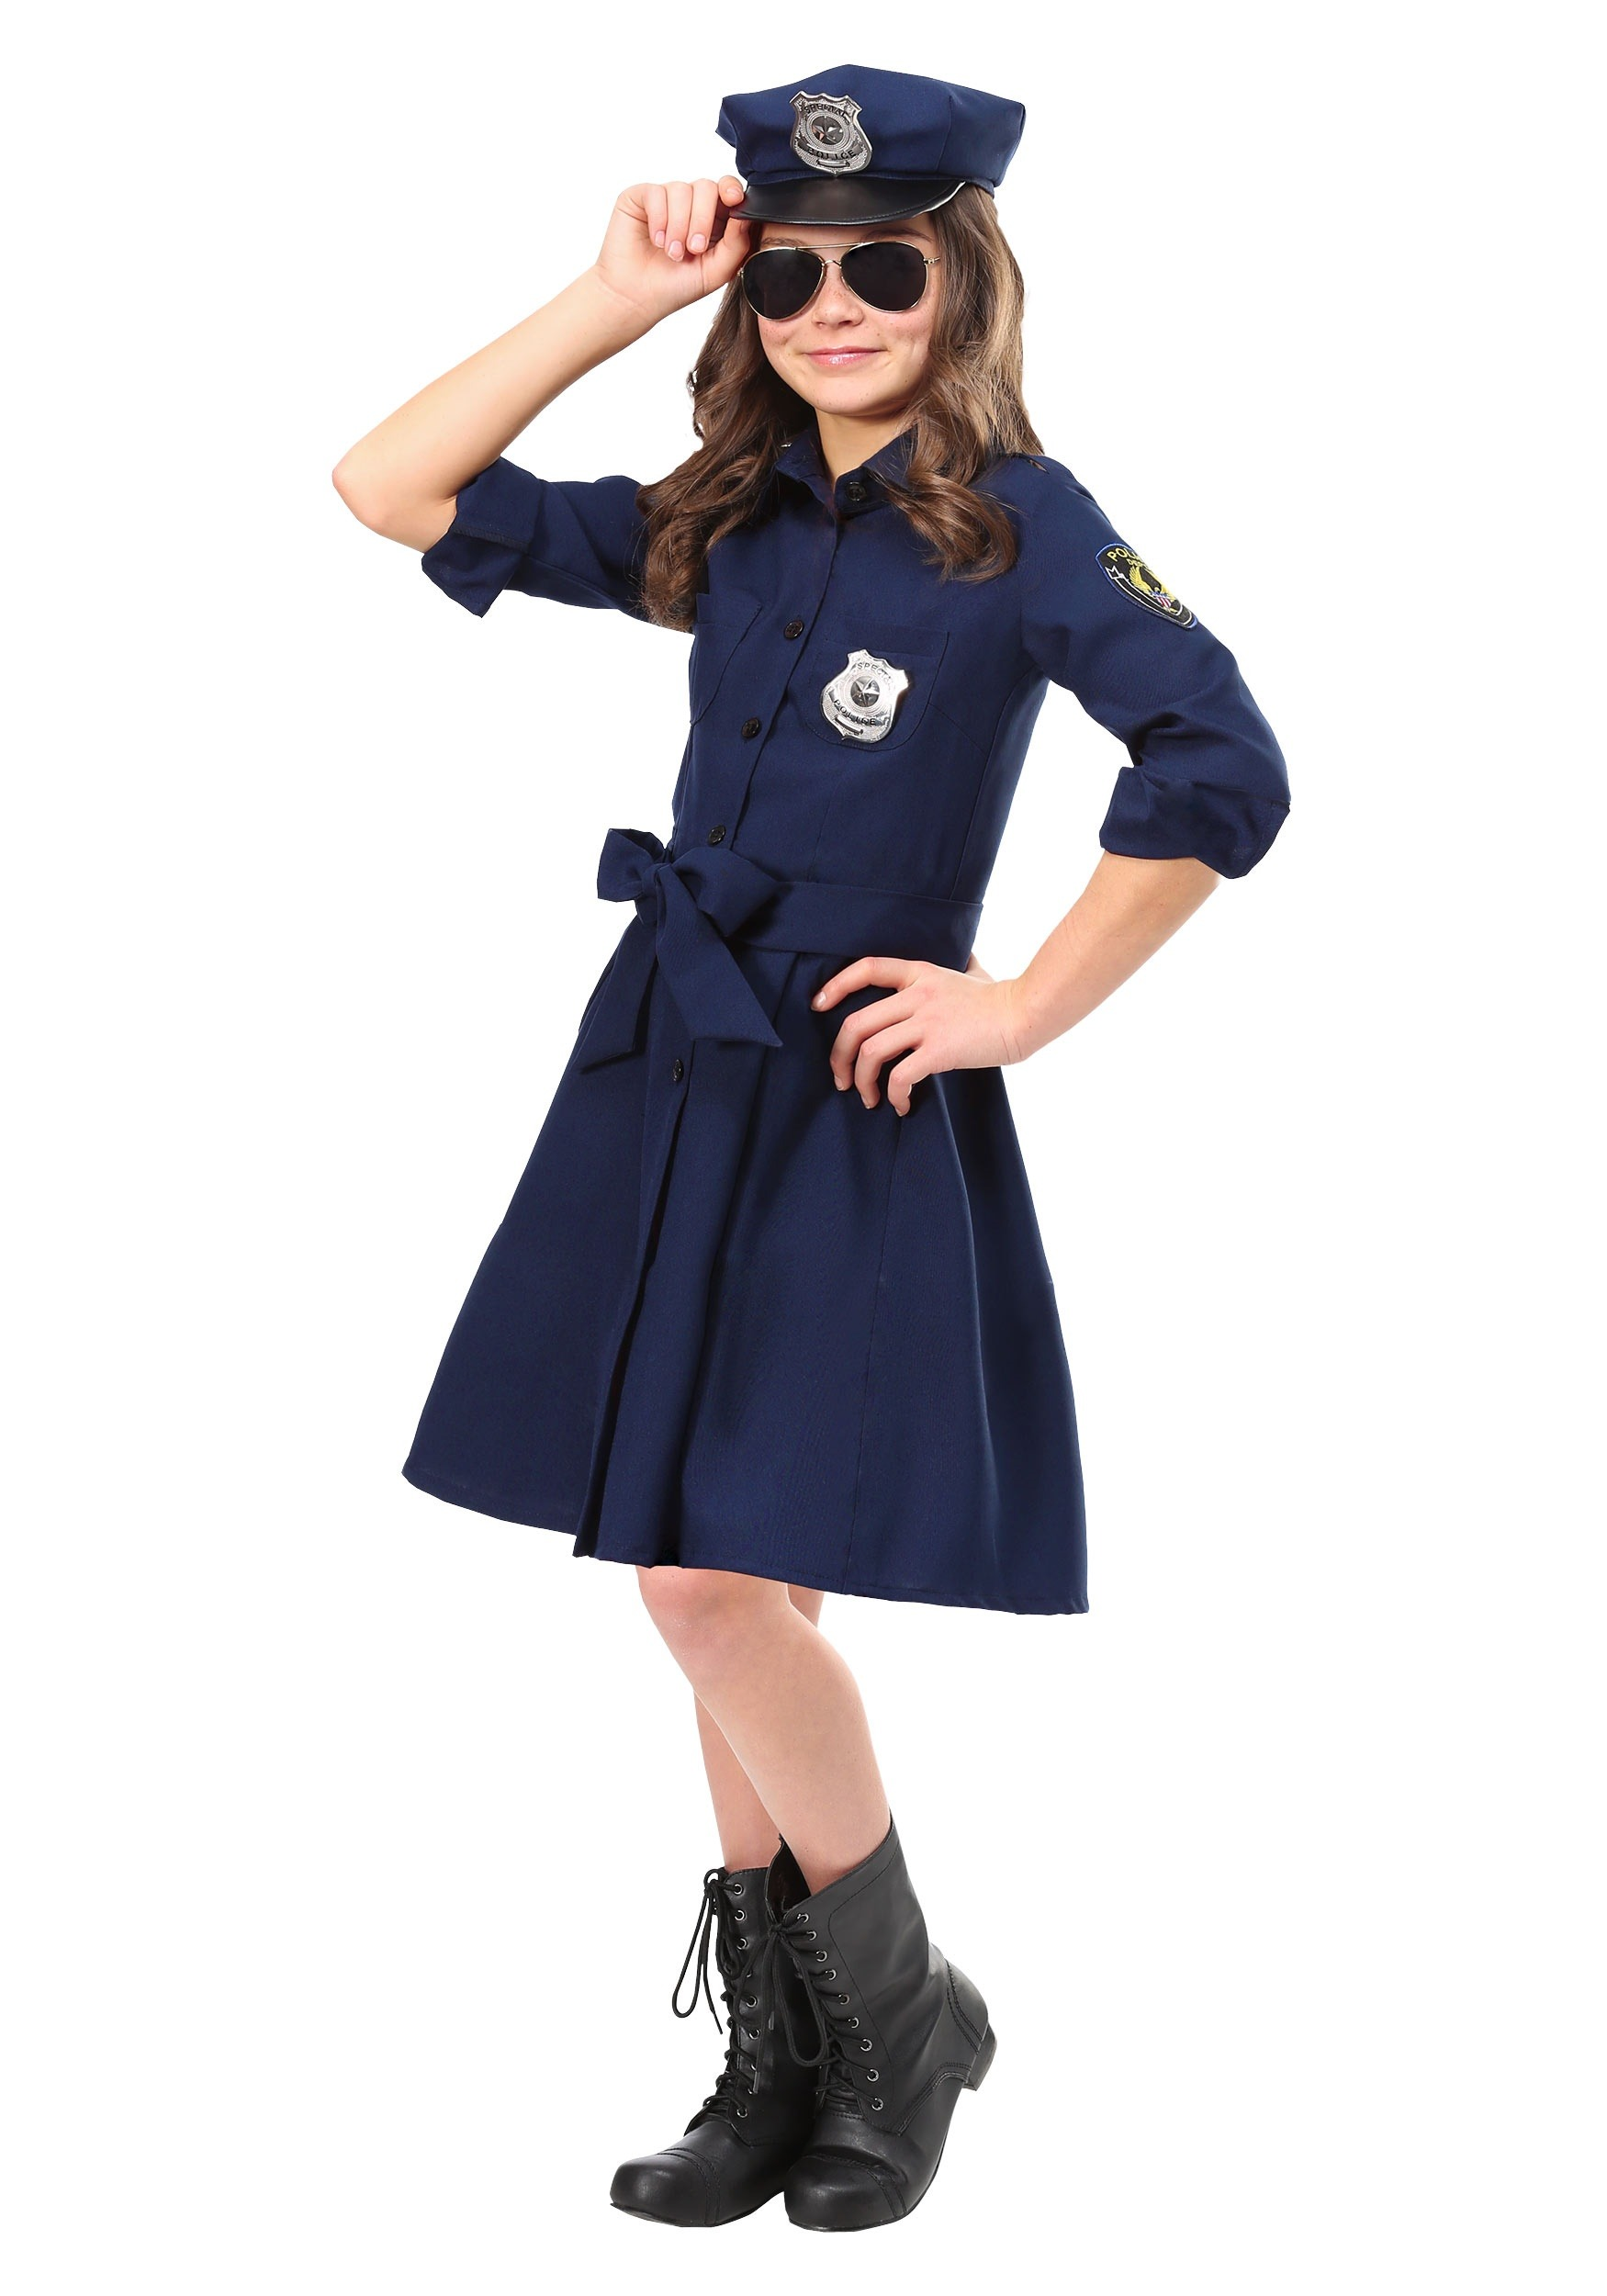 Police Officer Cop Costume for Girls